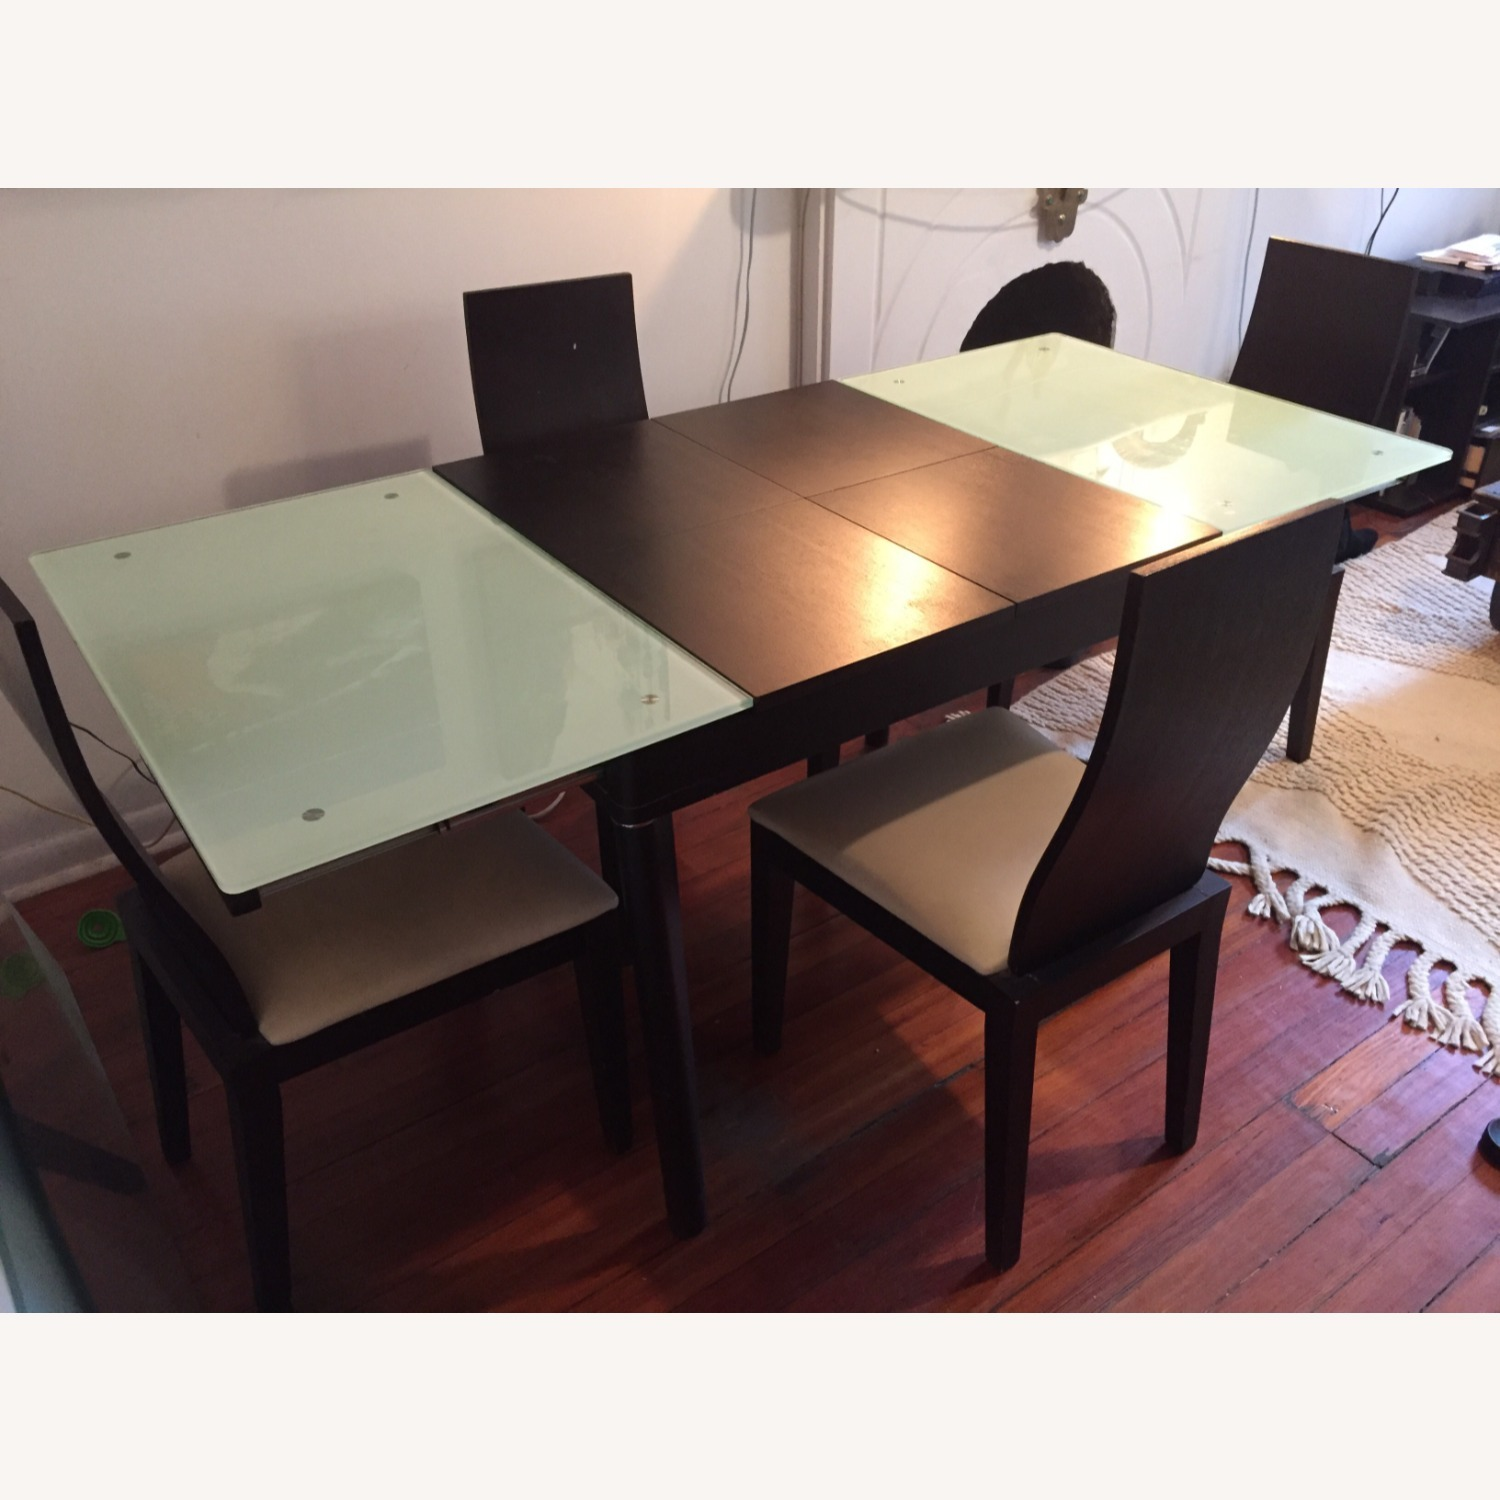 Calligaris Italian Extendable Dining Table Set with 4 Chairs - image-1